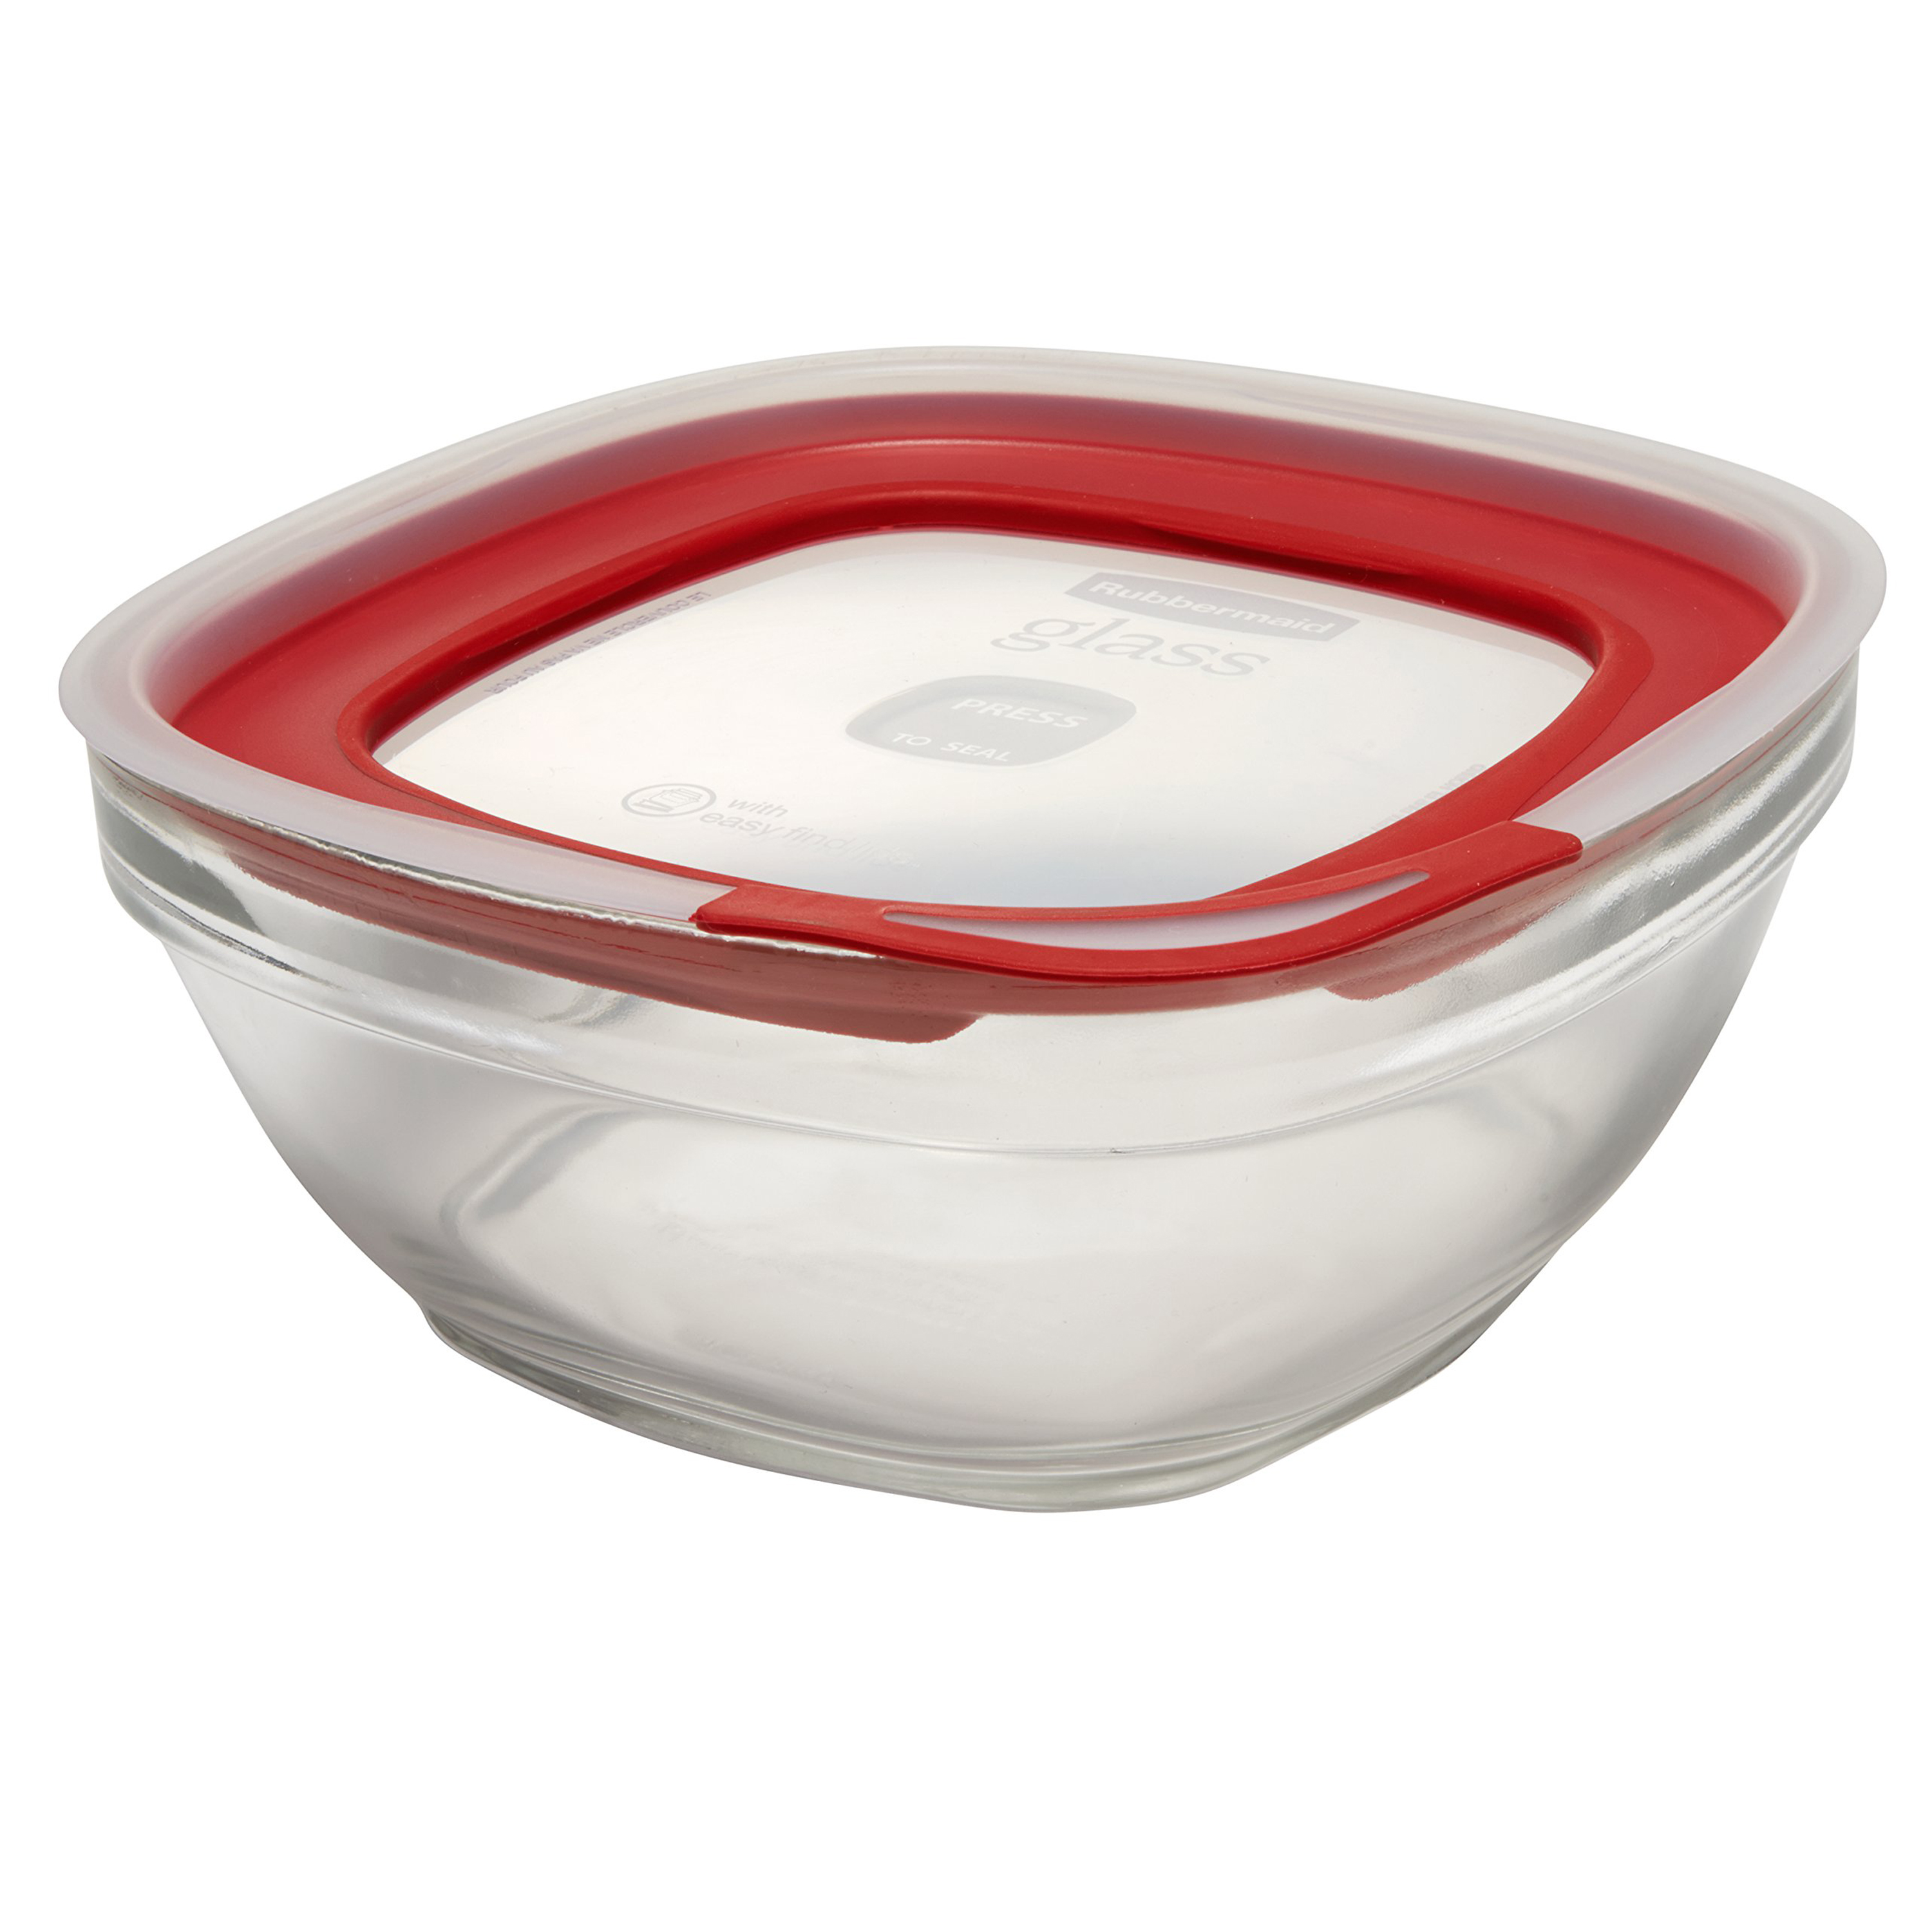 Rubbermaid Easy Find Lids Glass Food Storage Container, 11.5 Cup